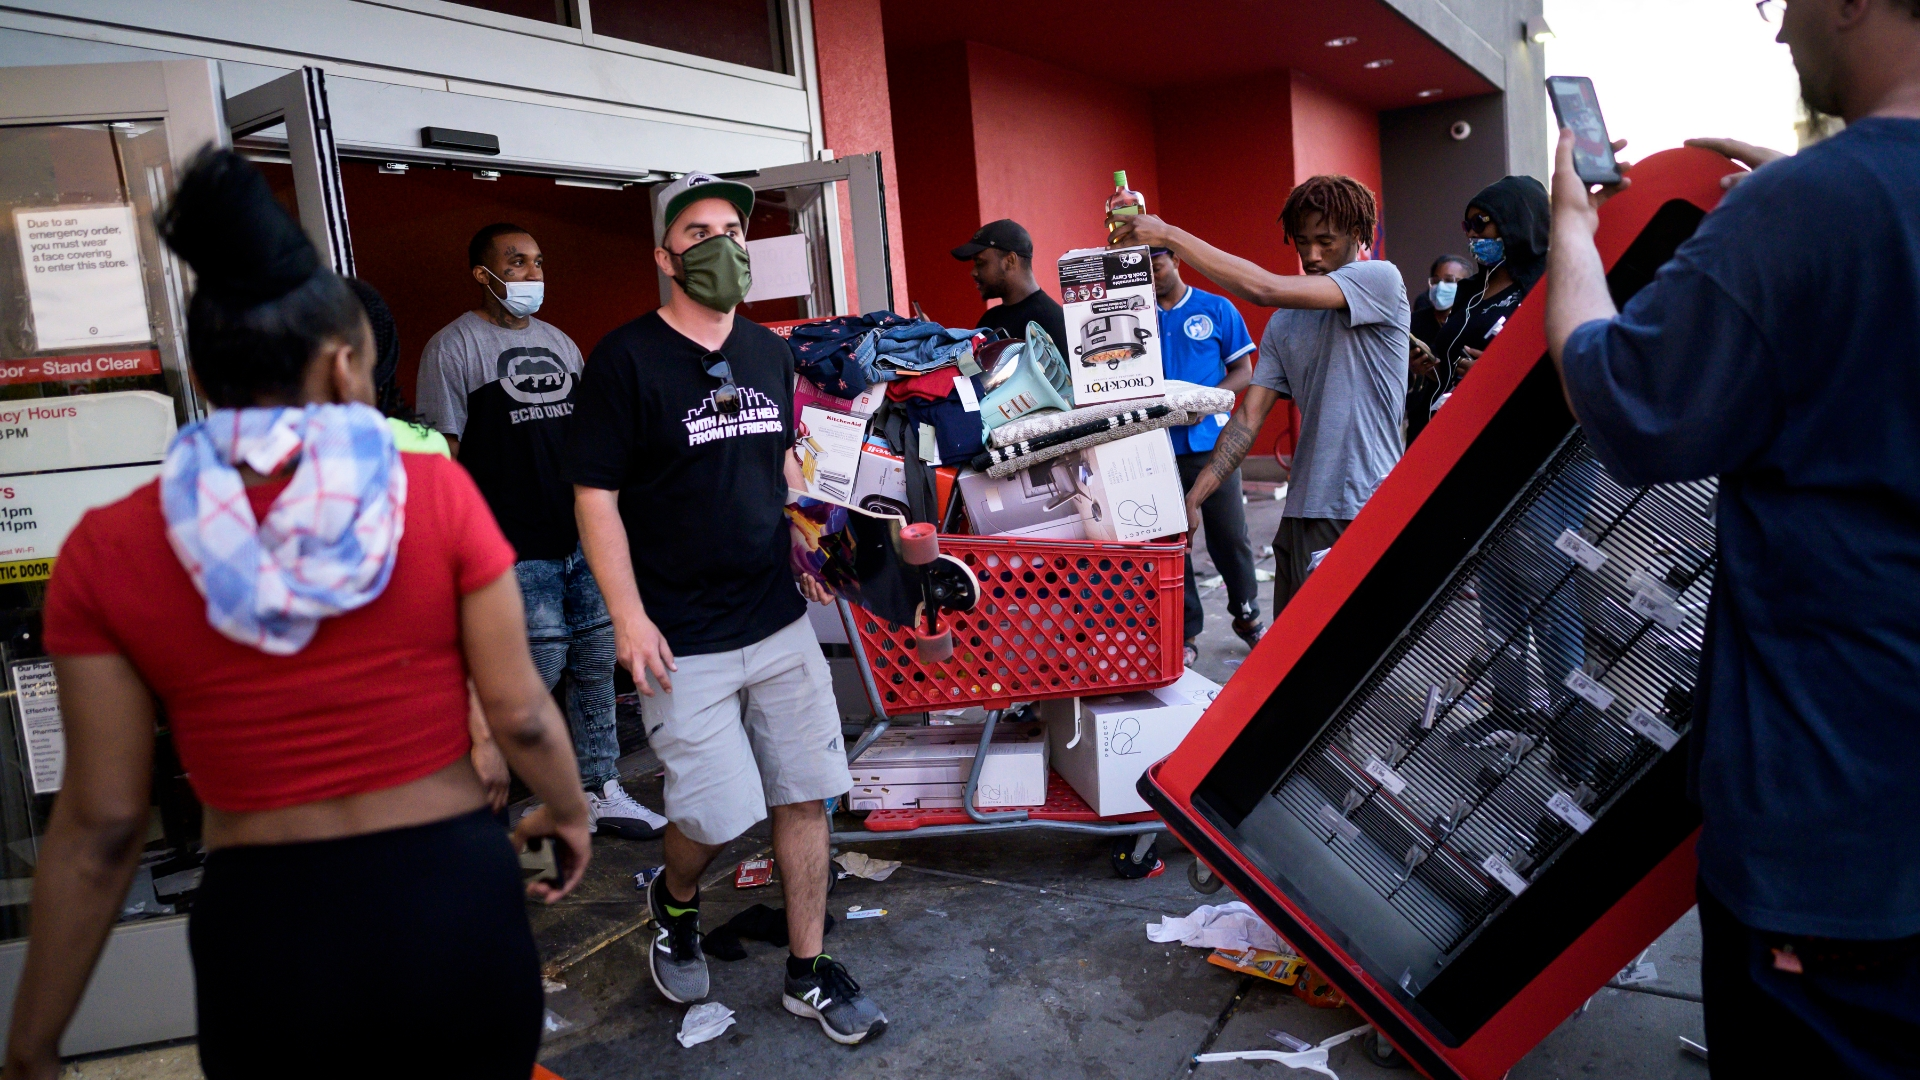 Video shows looters ransacking Minneapolis Target - The Washington ...